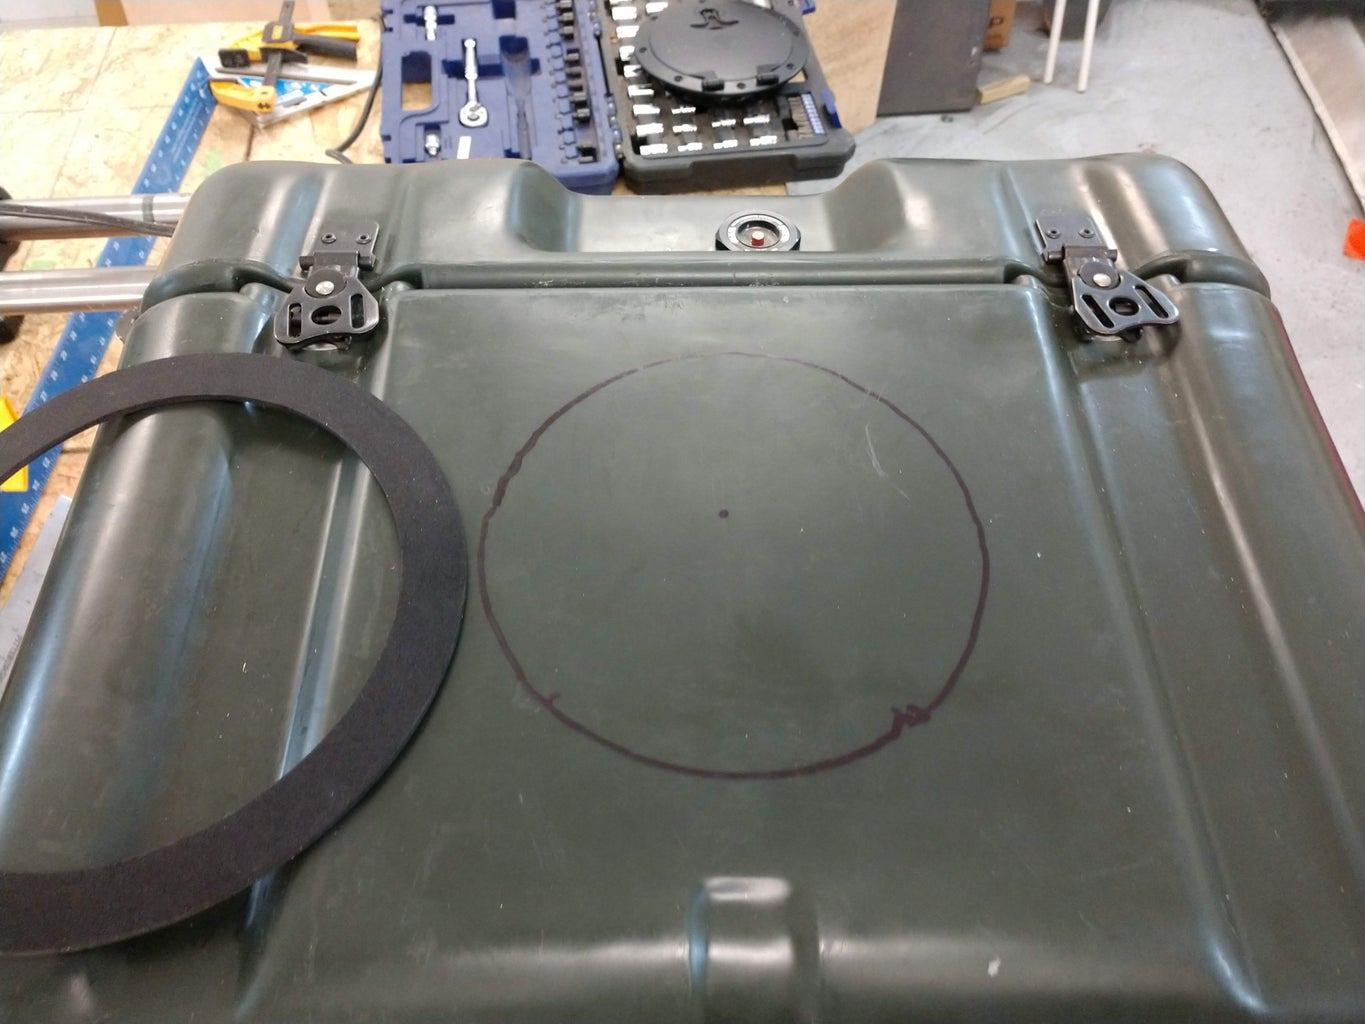 Install the Deck Hatch